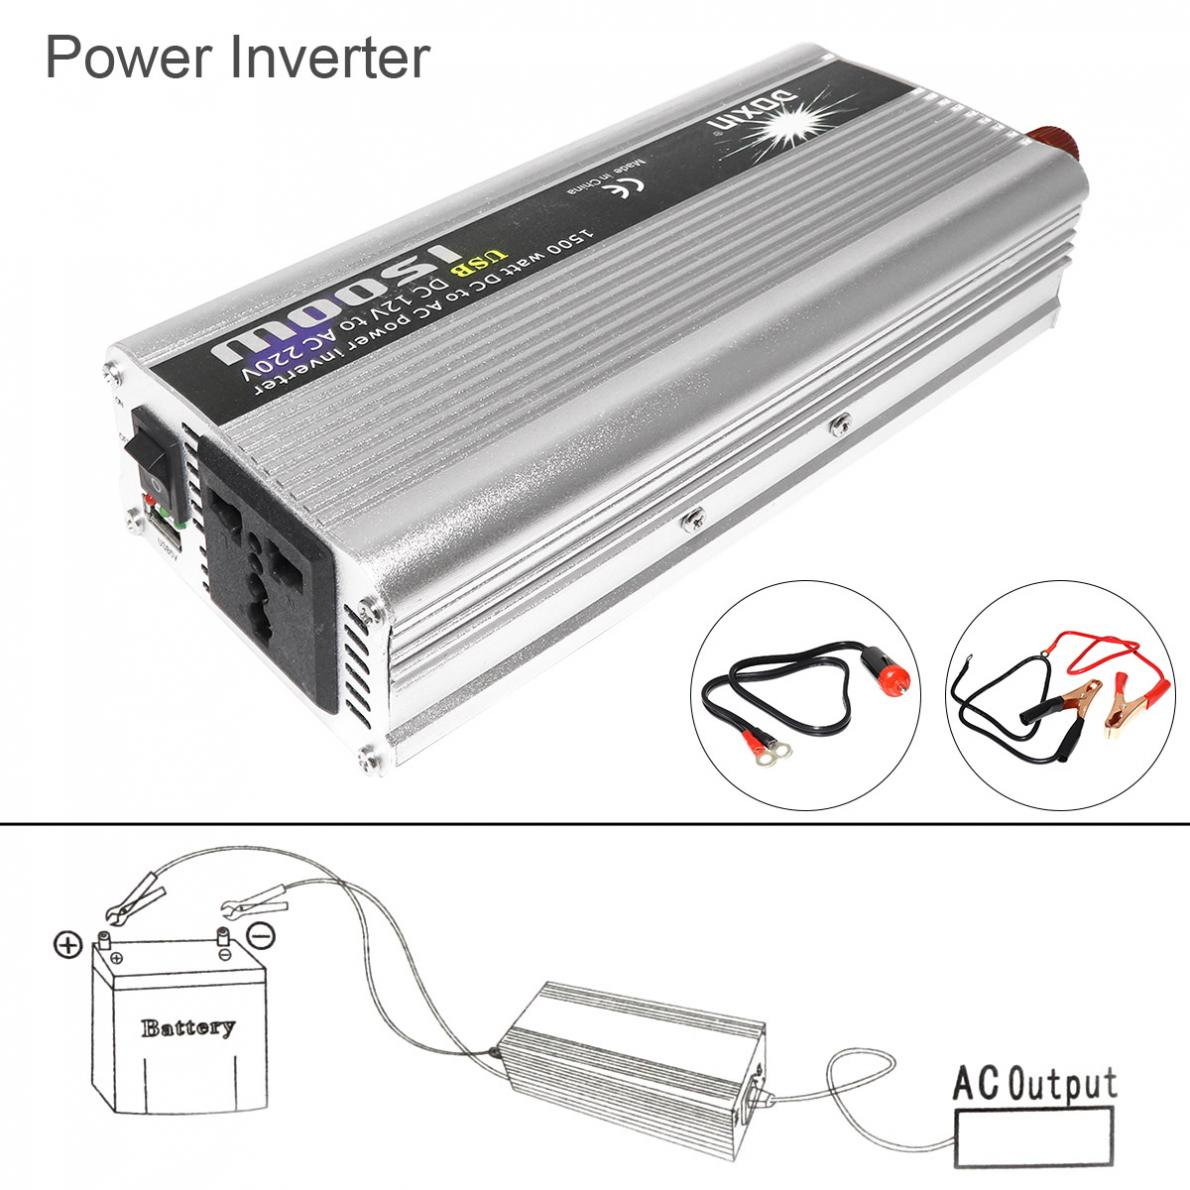 <font><b>1500W</b></font> Car Power <font><b>Inverter</b></font> DC 12V 24V to AC 220V 110V USB Power Charger Converter Car <font><b>Inverter</b></font> Peak Power 3000W image